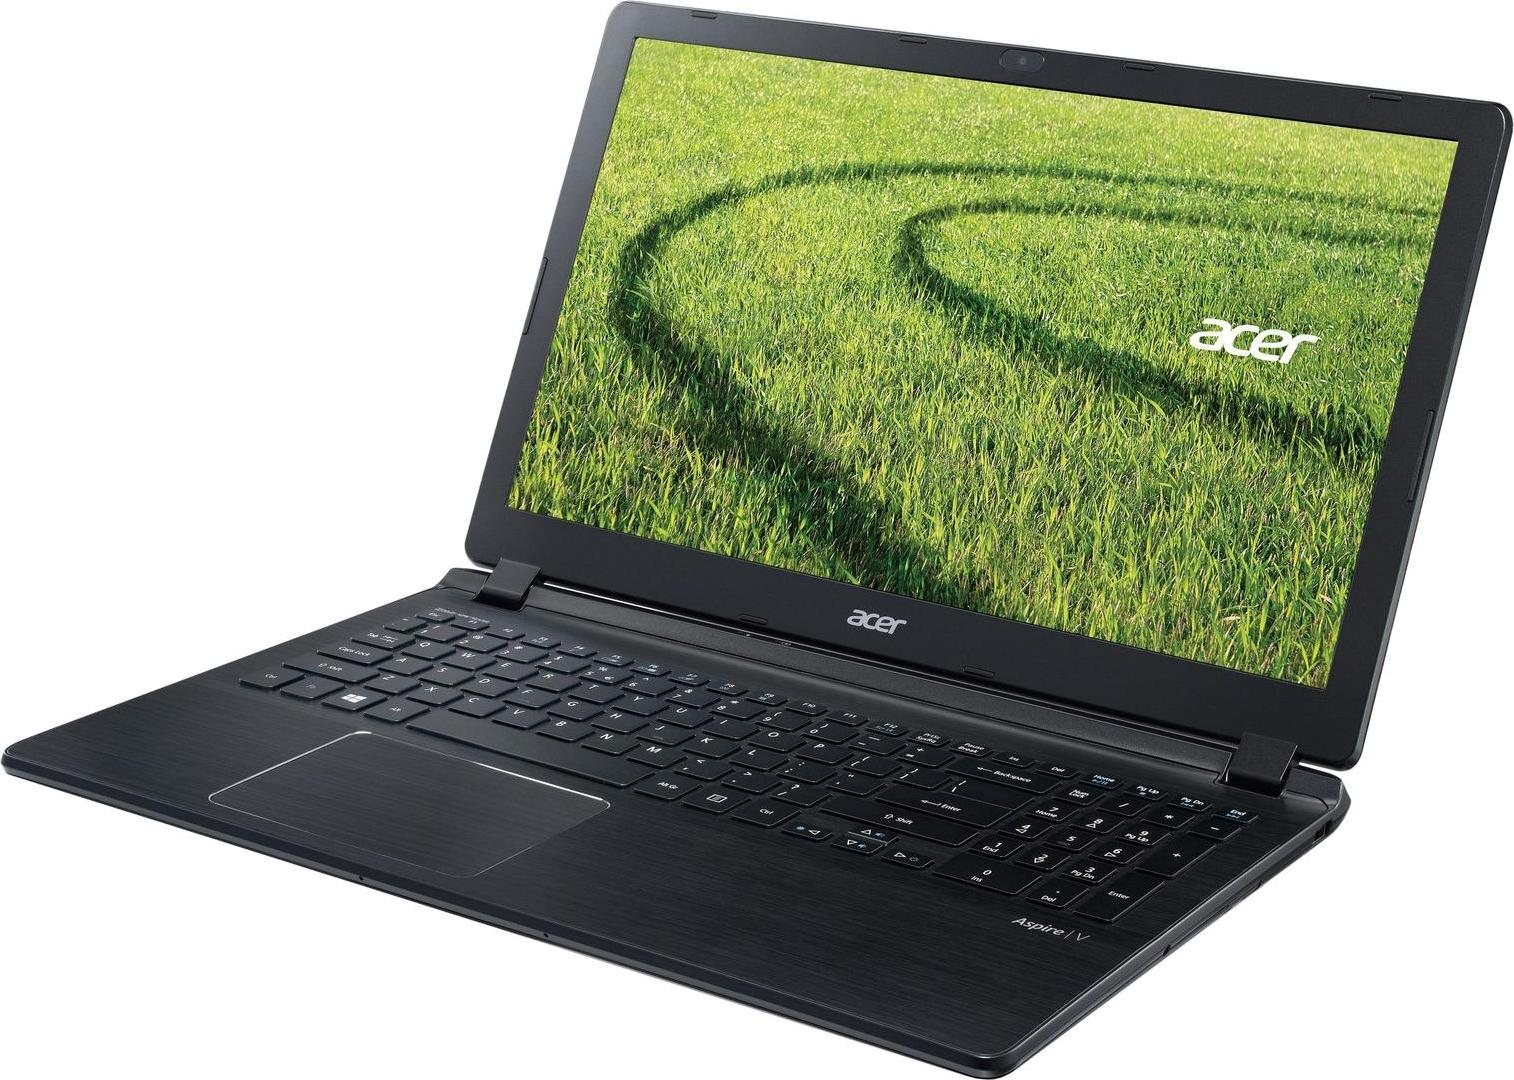 Acer Nplify 802.11 A G N Bt 4.0 Driver Download